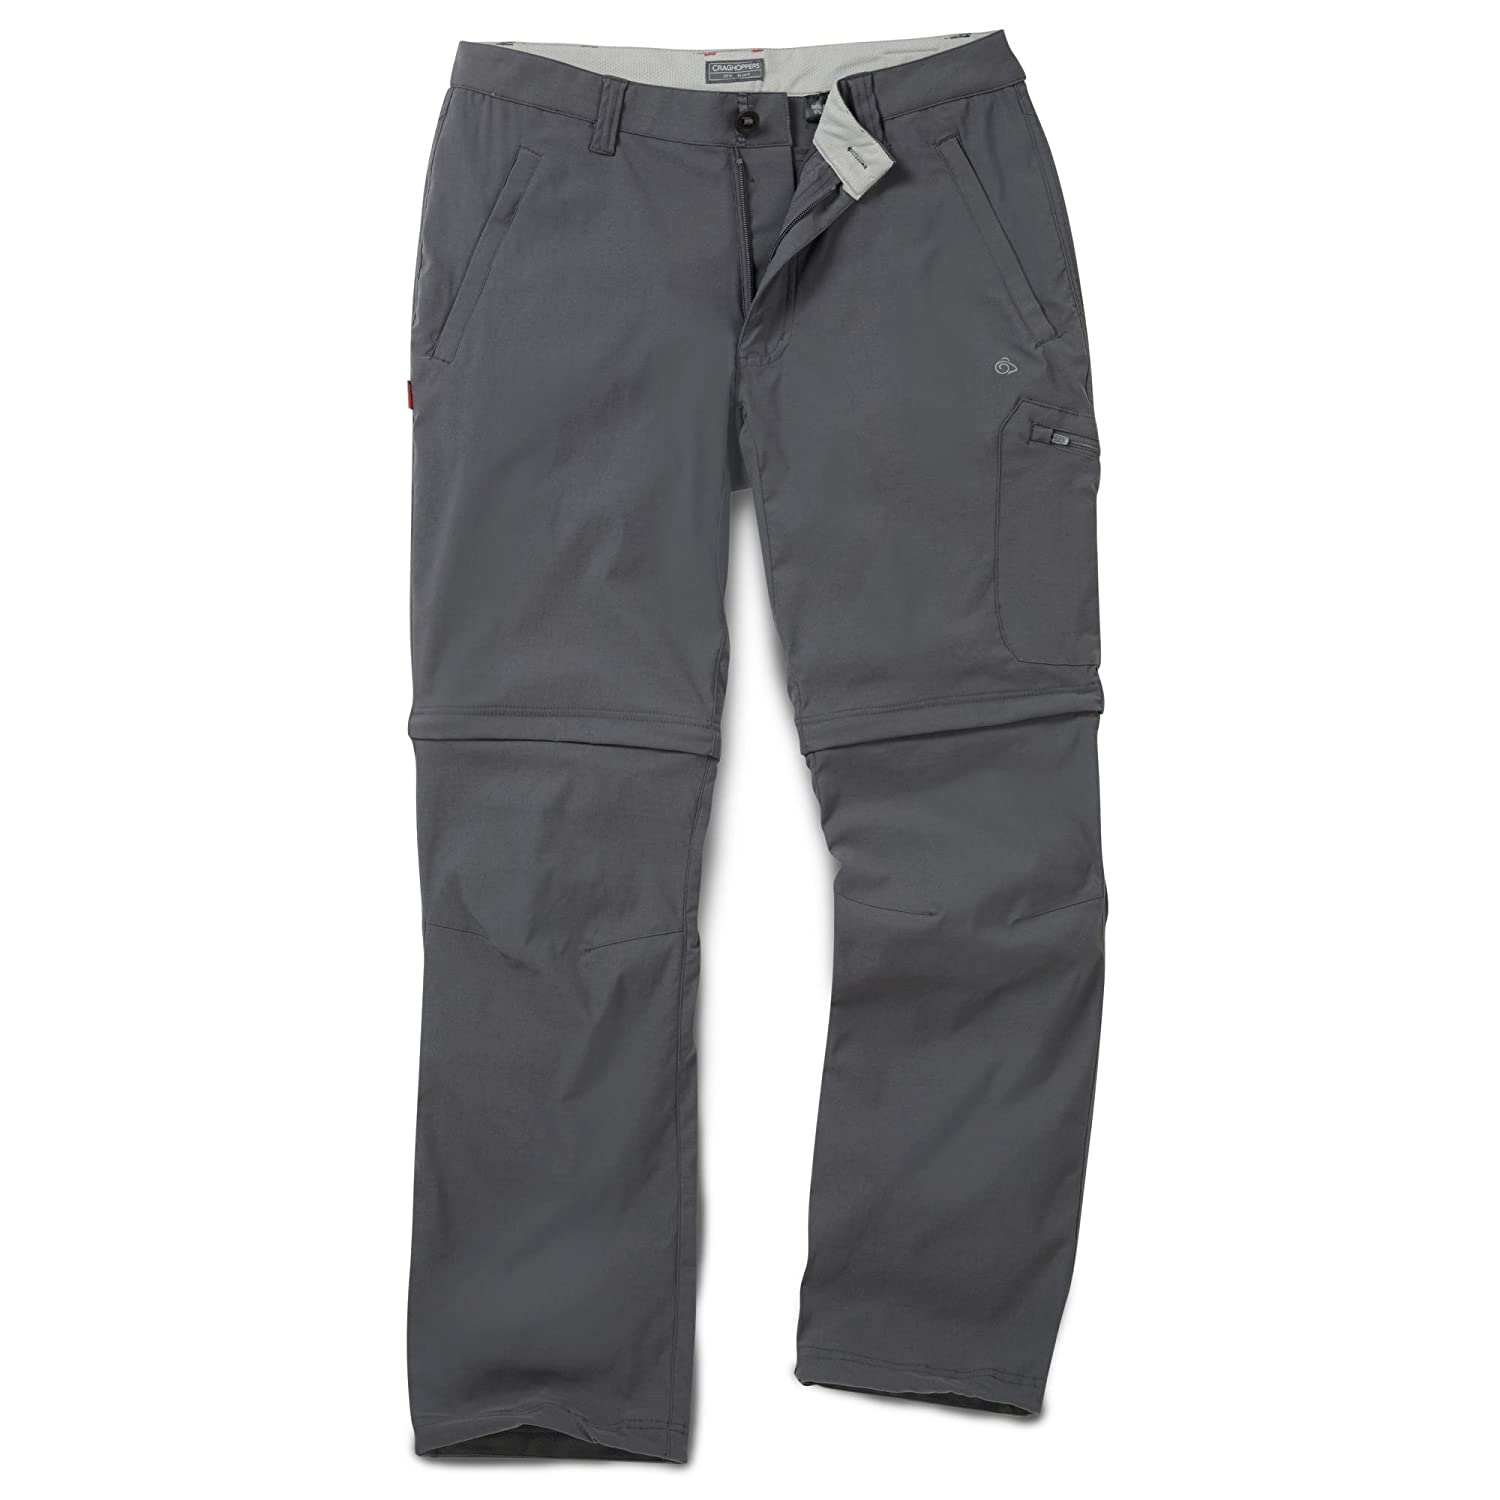 NosiLife He. Pro Convertible Trousers